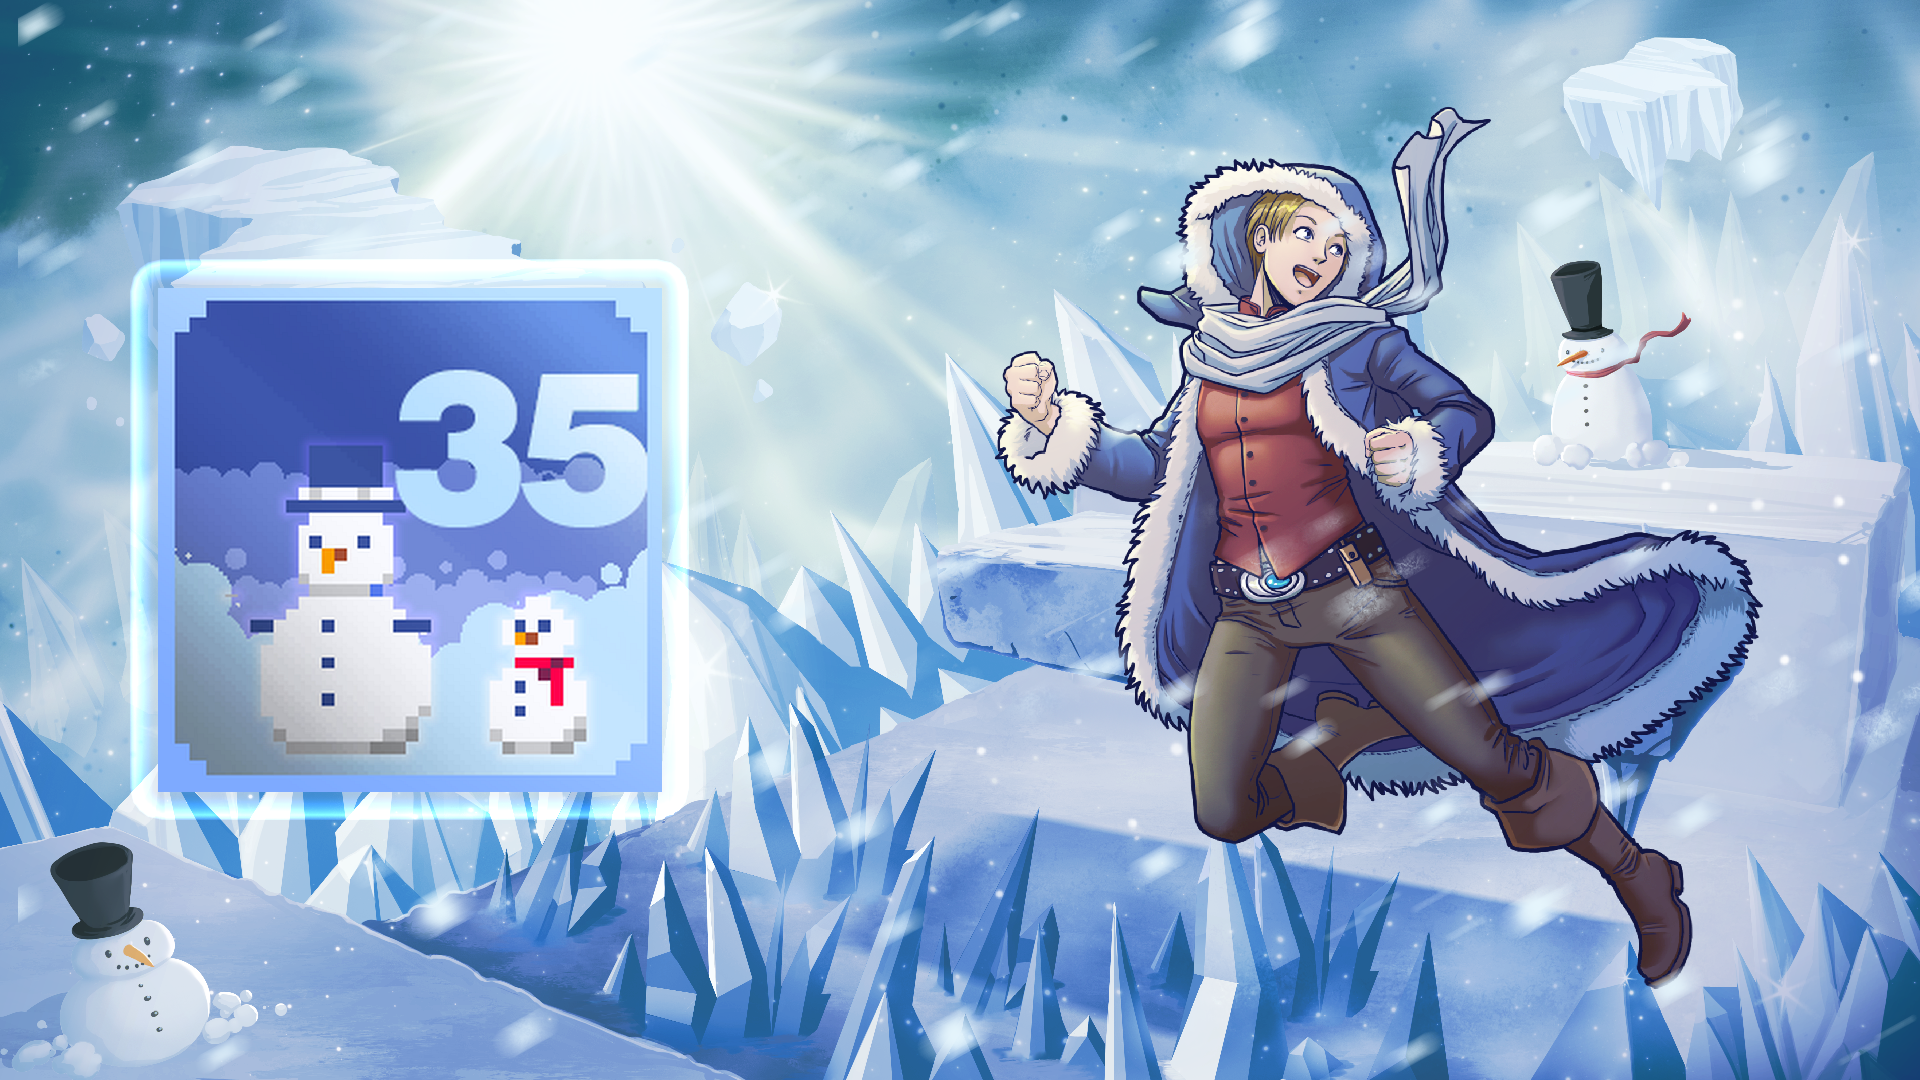 Icon for Level 35